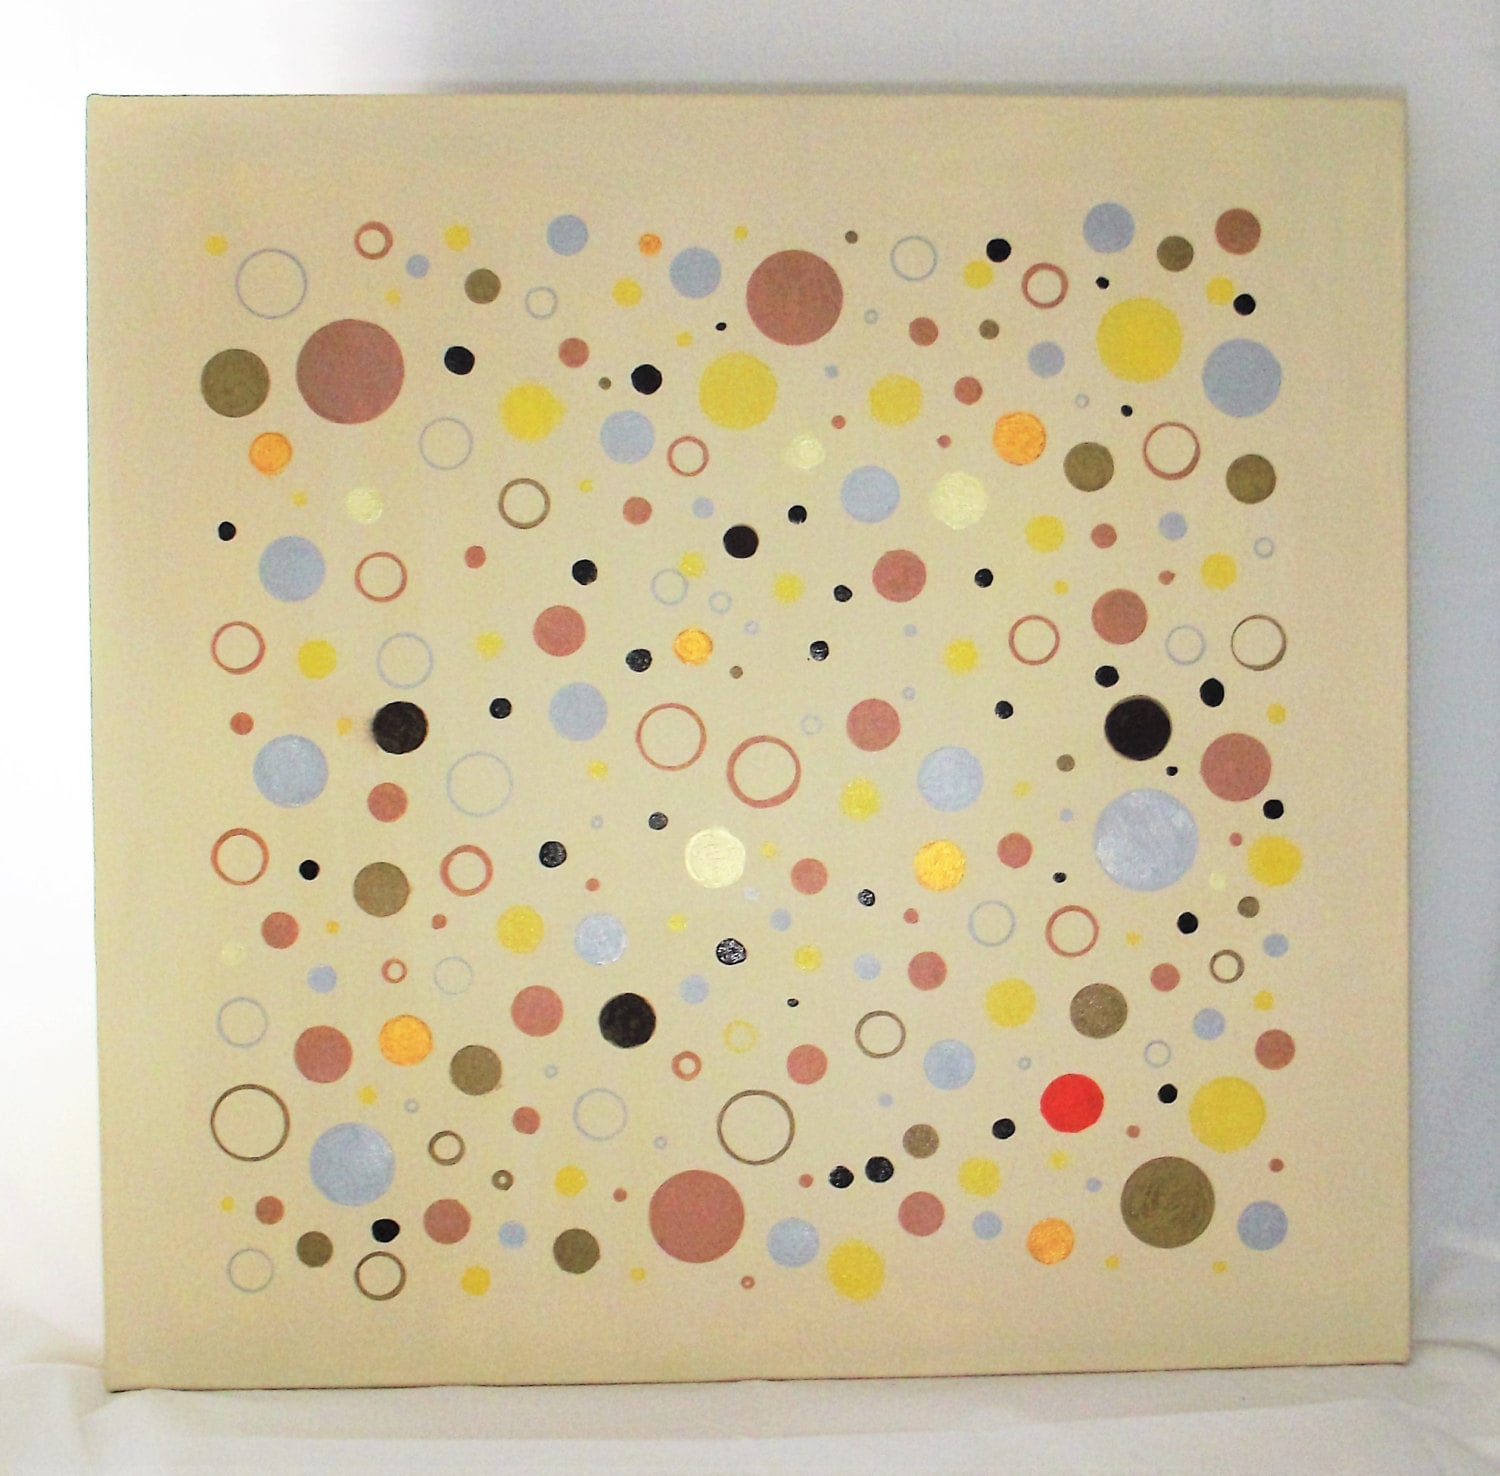 Abstract Wall Art Circles Spheres Neutral yellow brown gold